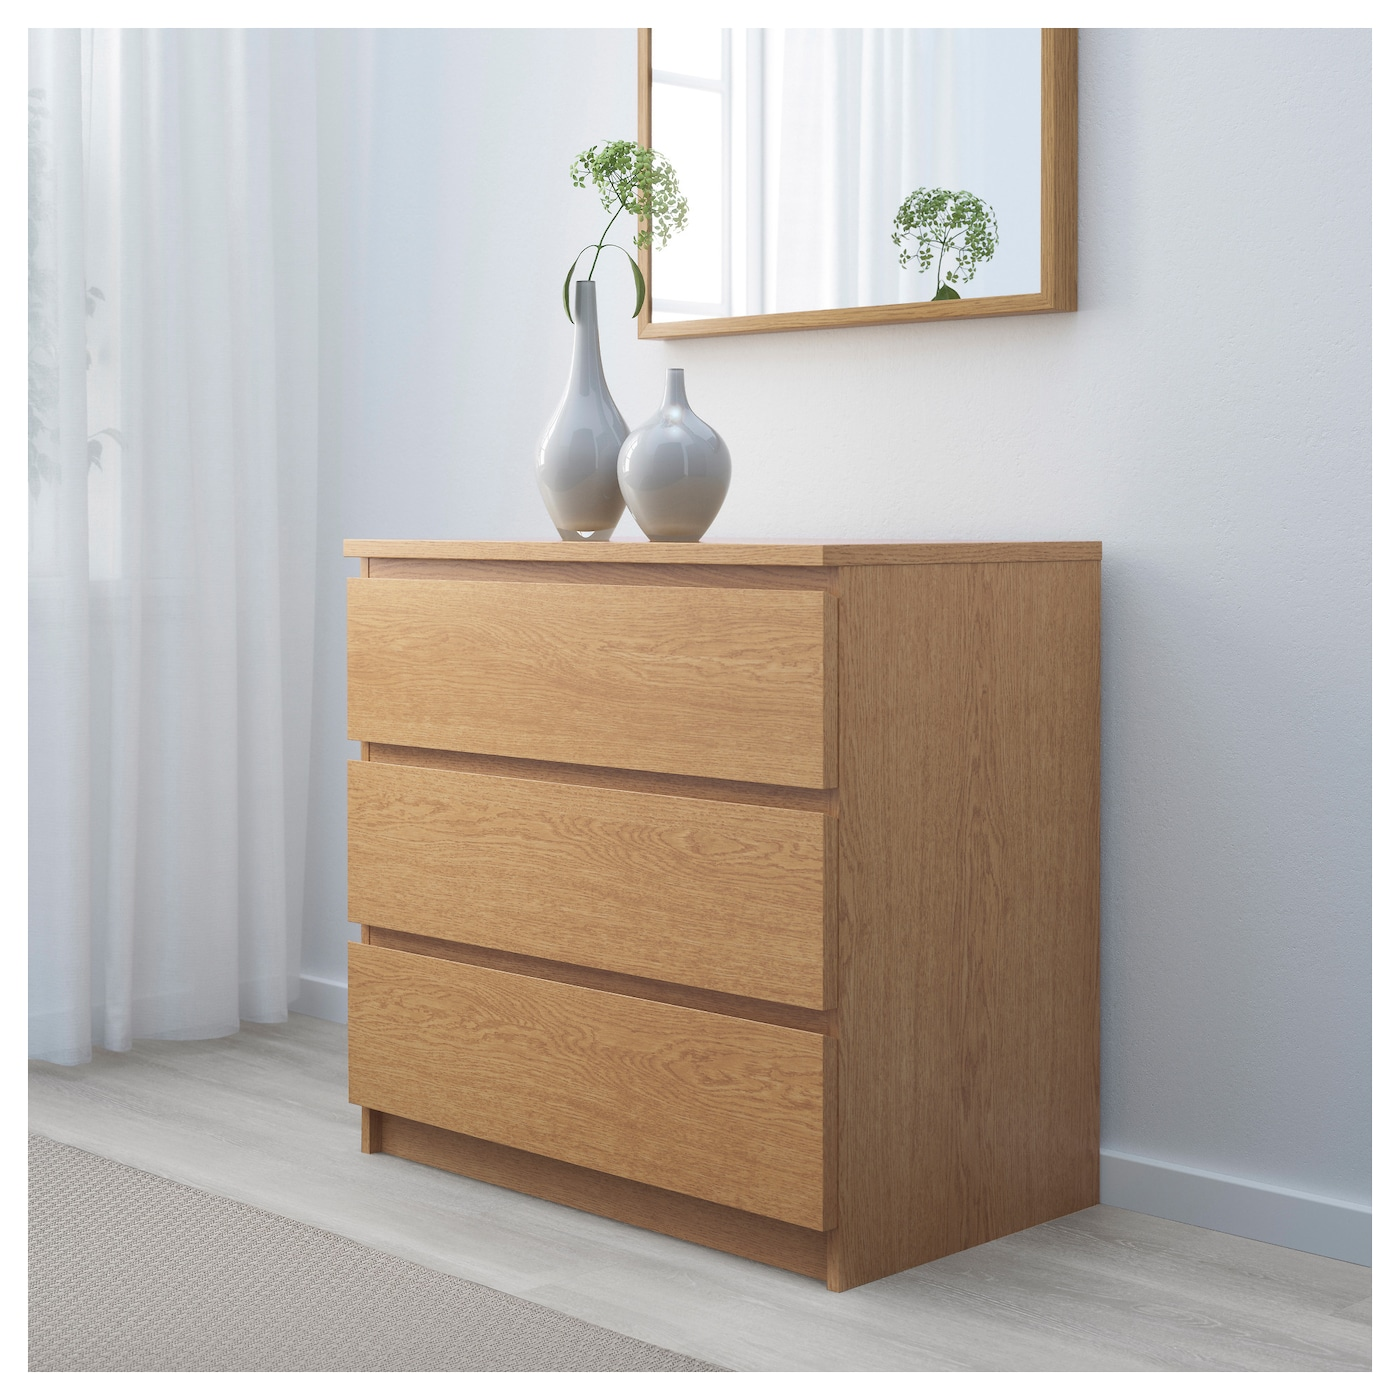 malm chest of 3 drawers oak veneer 80 x 78 cm ikea. Black Bedroom Furniture Sets. Home Design Ideas